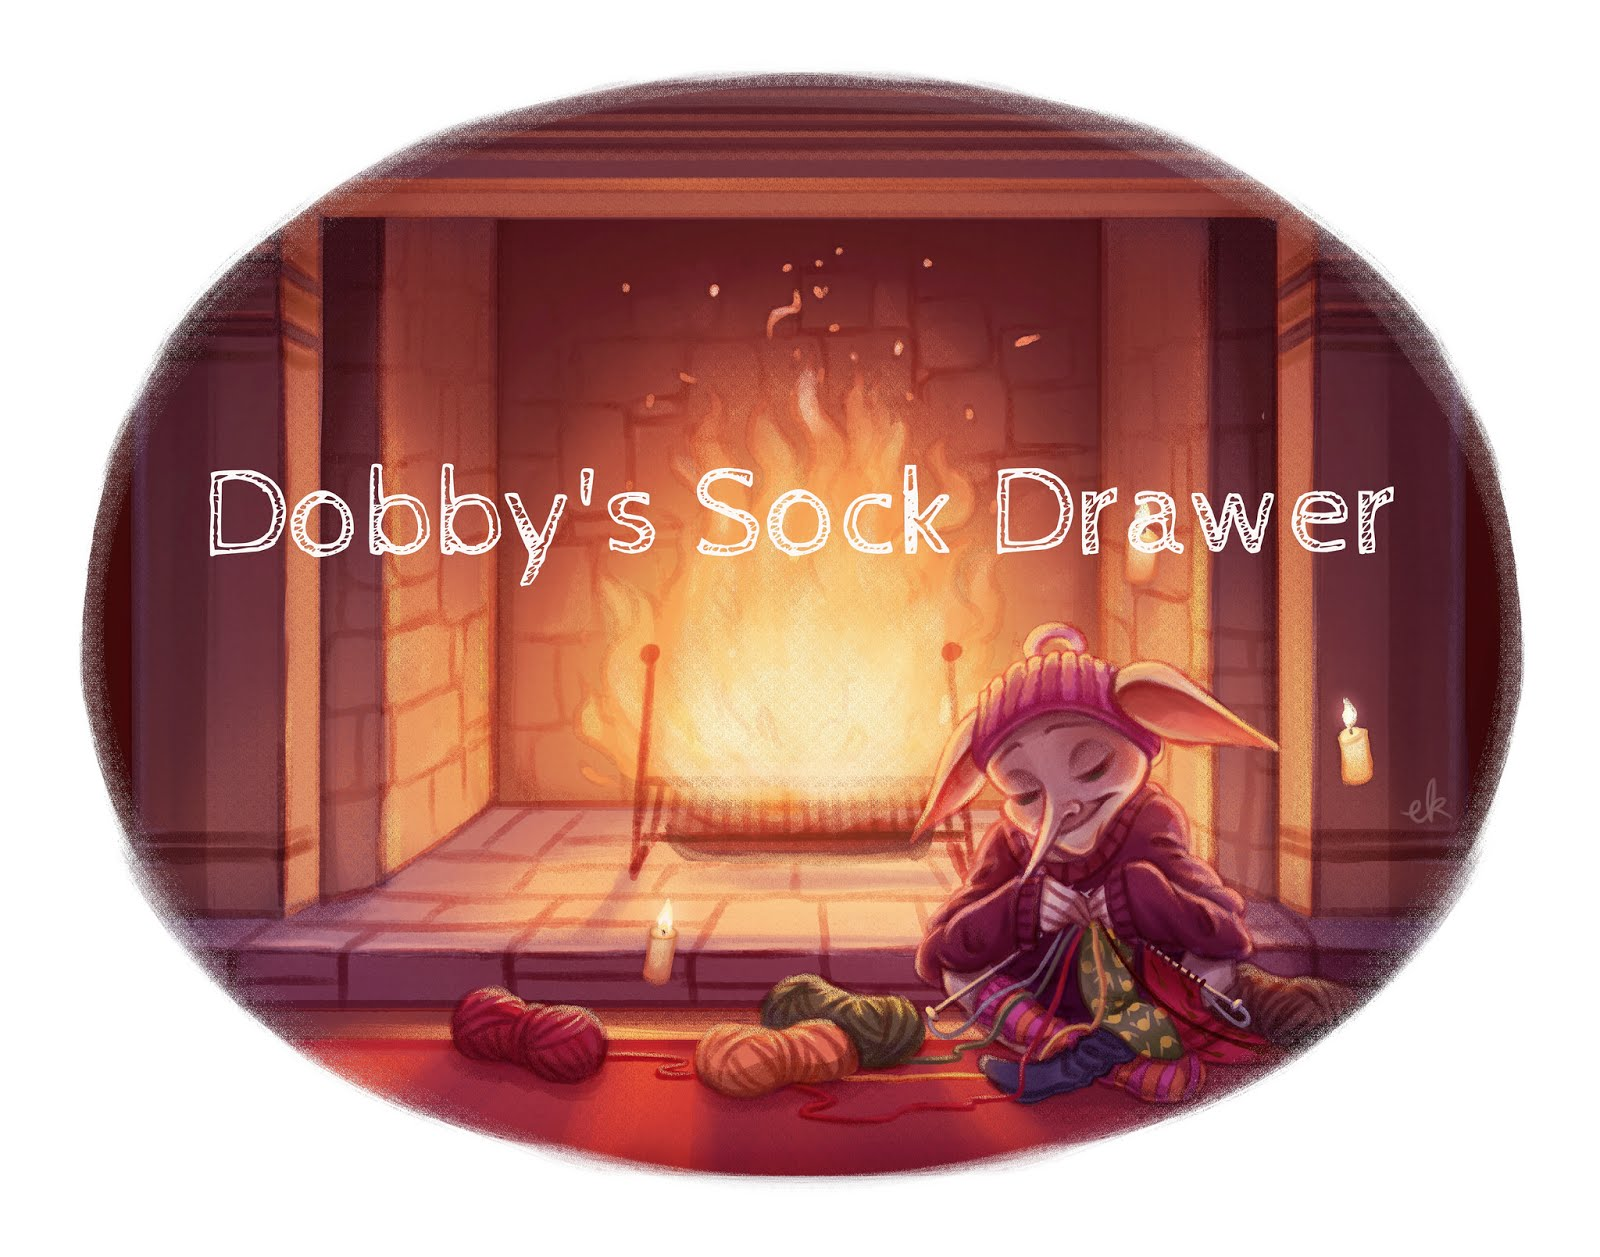 Dobby's Sock Drawer